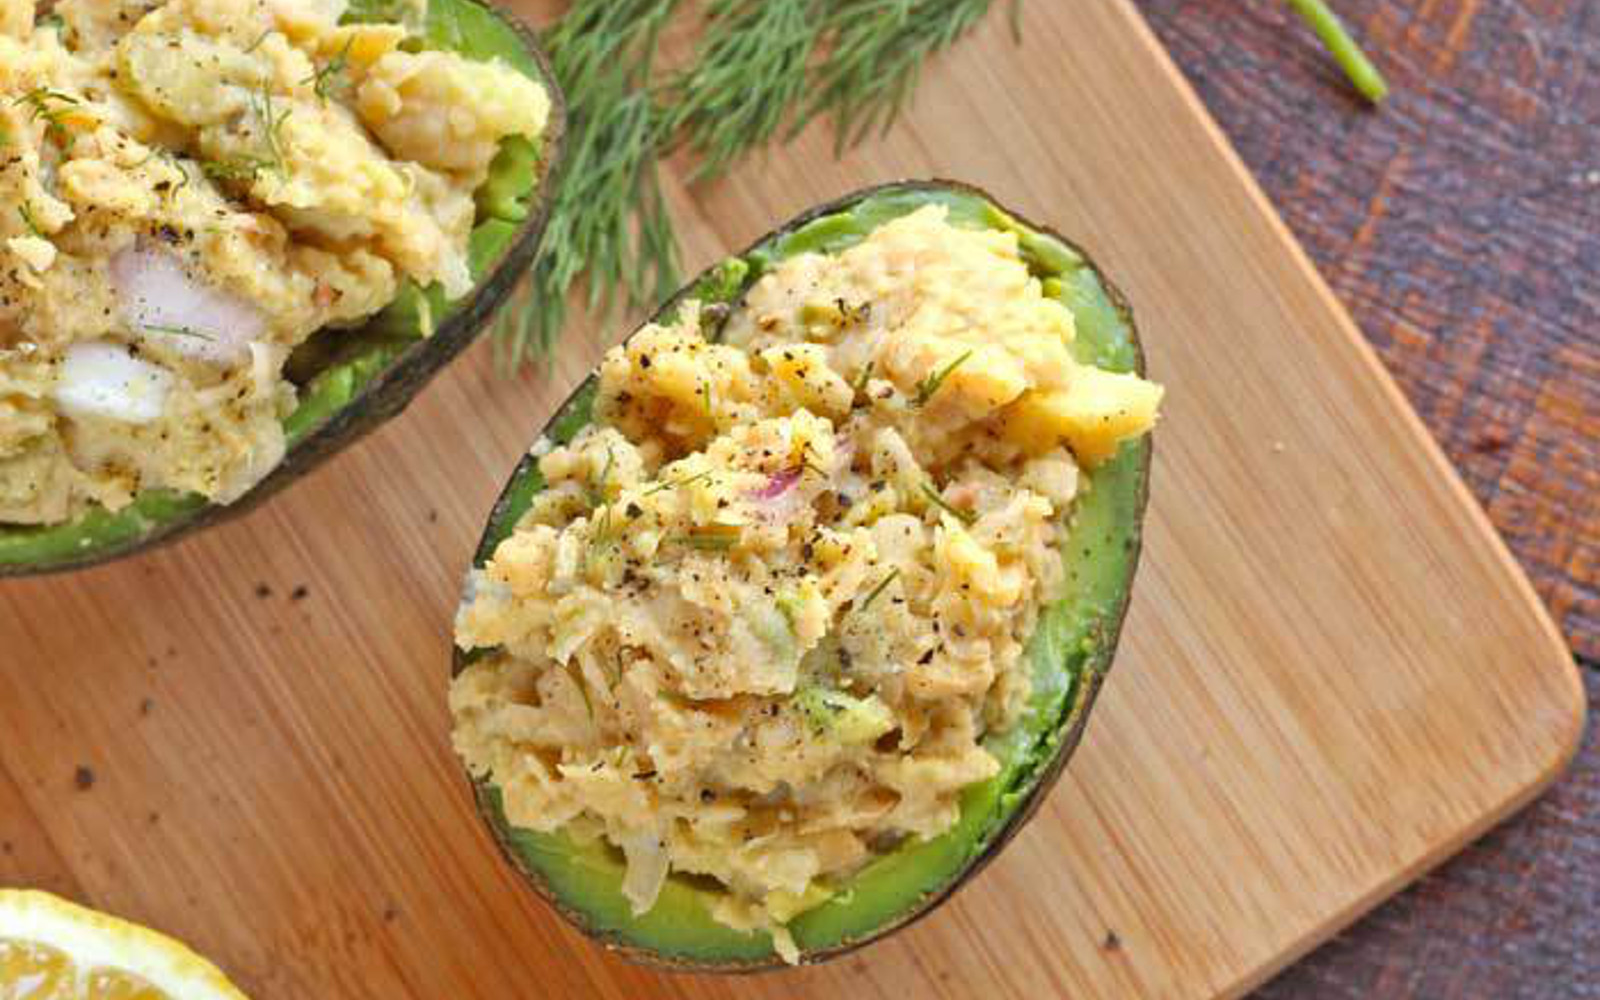 Chickpea Salad Stuffed Avocados